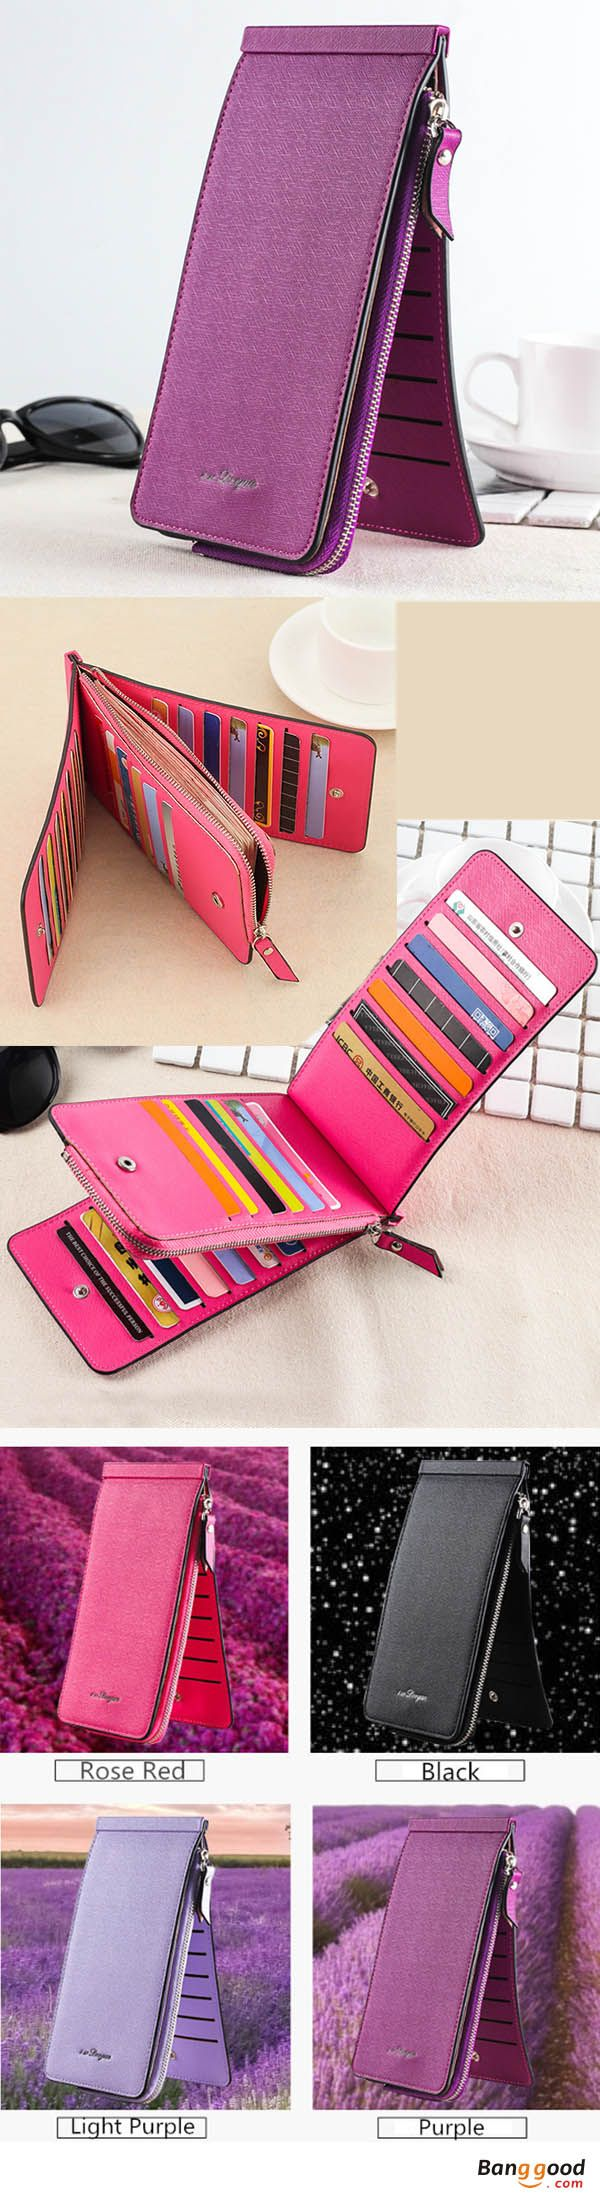 Women Men 26 Multi Card Holder Ultra Thin PU Leather Zipper Business Card Case 5.5'' Phone Bags.  26 Card Holder, 5.5'' Phone, Cash, Coin, etc. Women's phone bags, bags for iPhone, card case, card holder,  bags and purses. Get the look!